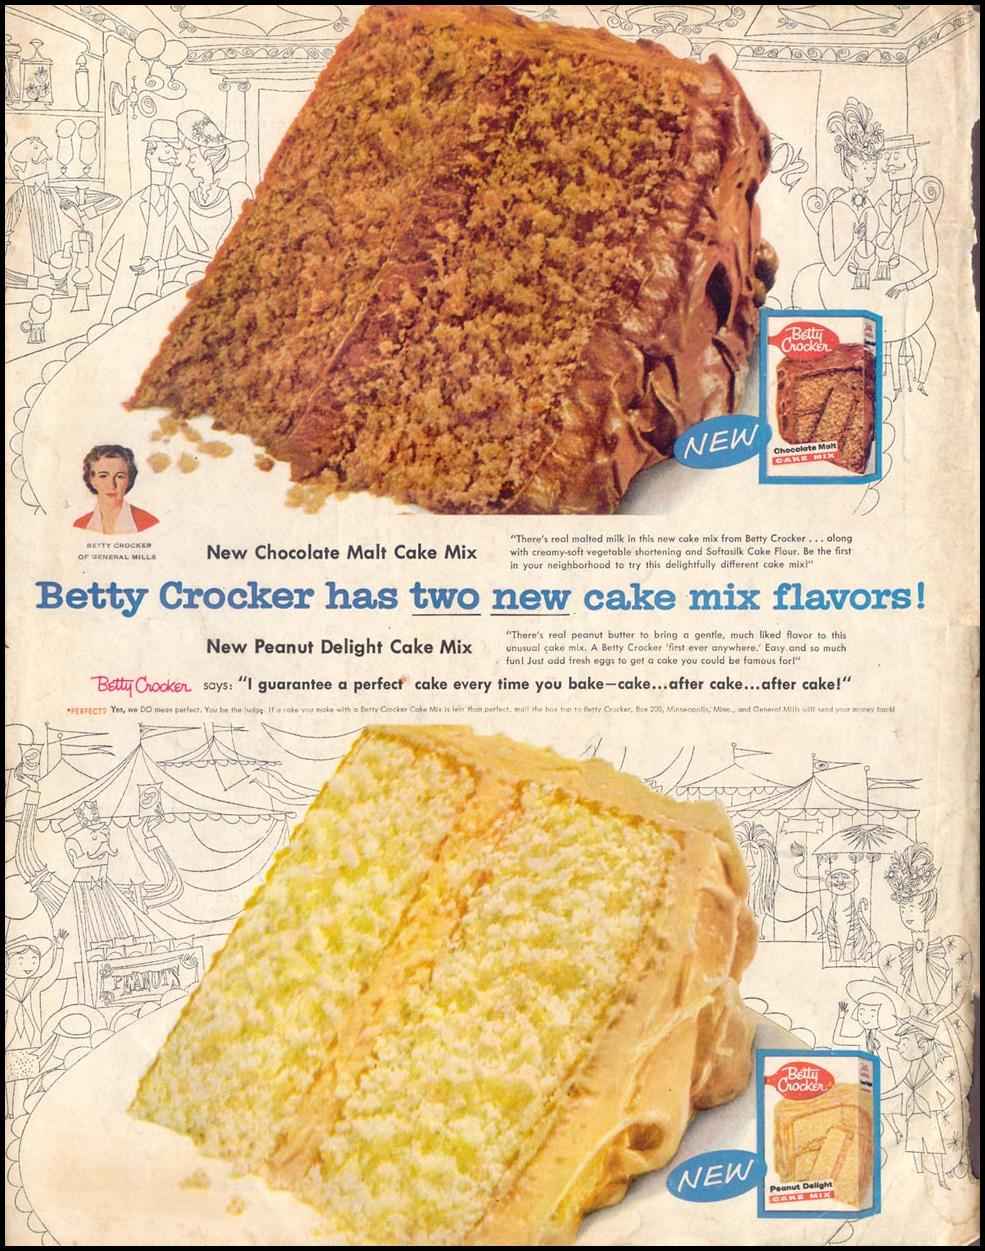 BETTY CROCKER CAKE MIXES SATURDAY EVENING POST 09/10/1955 BACK COVER